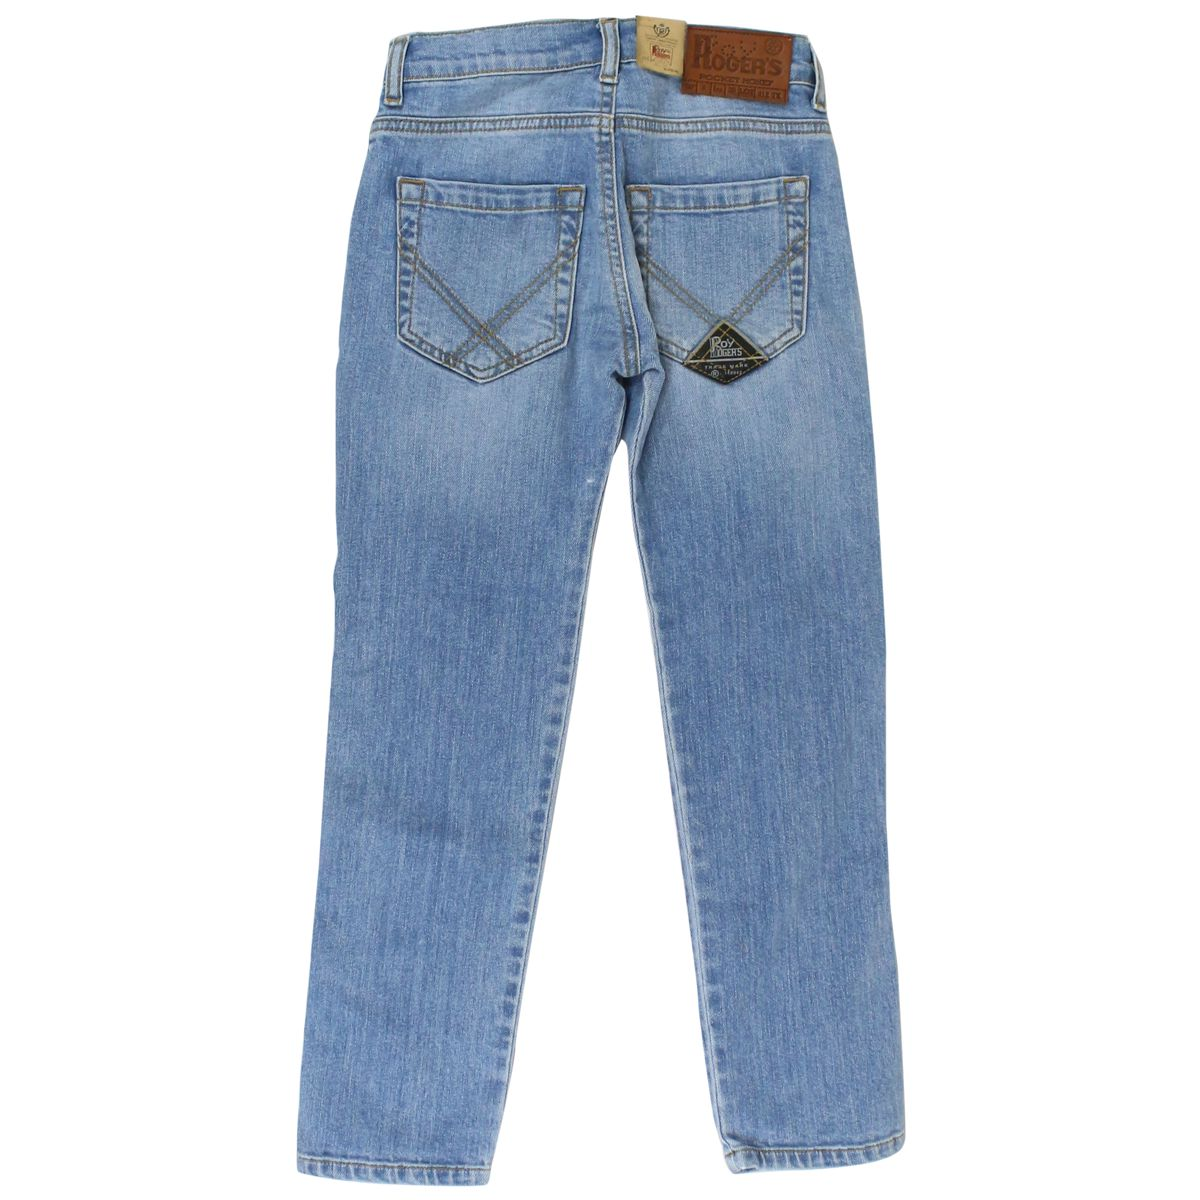 Jeans Sinclair Baine Medium denim ROY ROGER'S